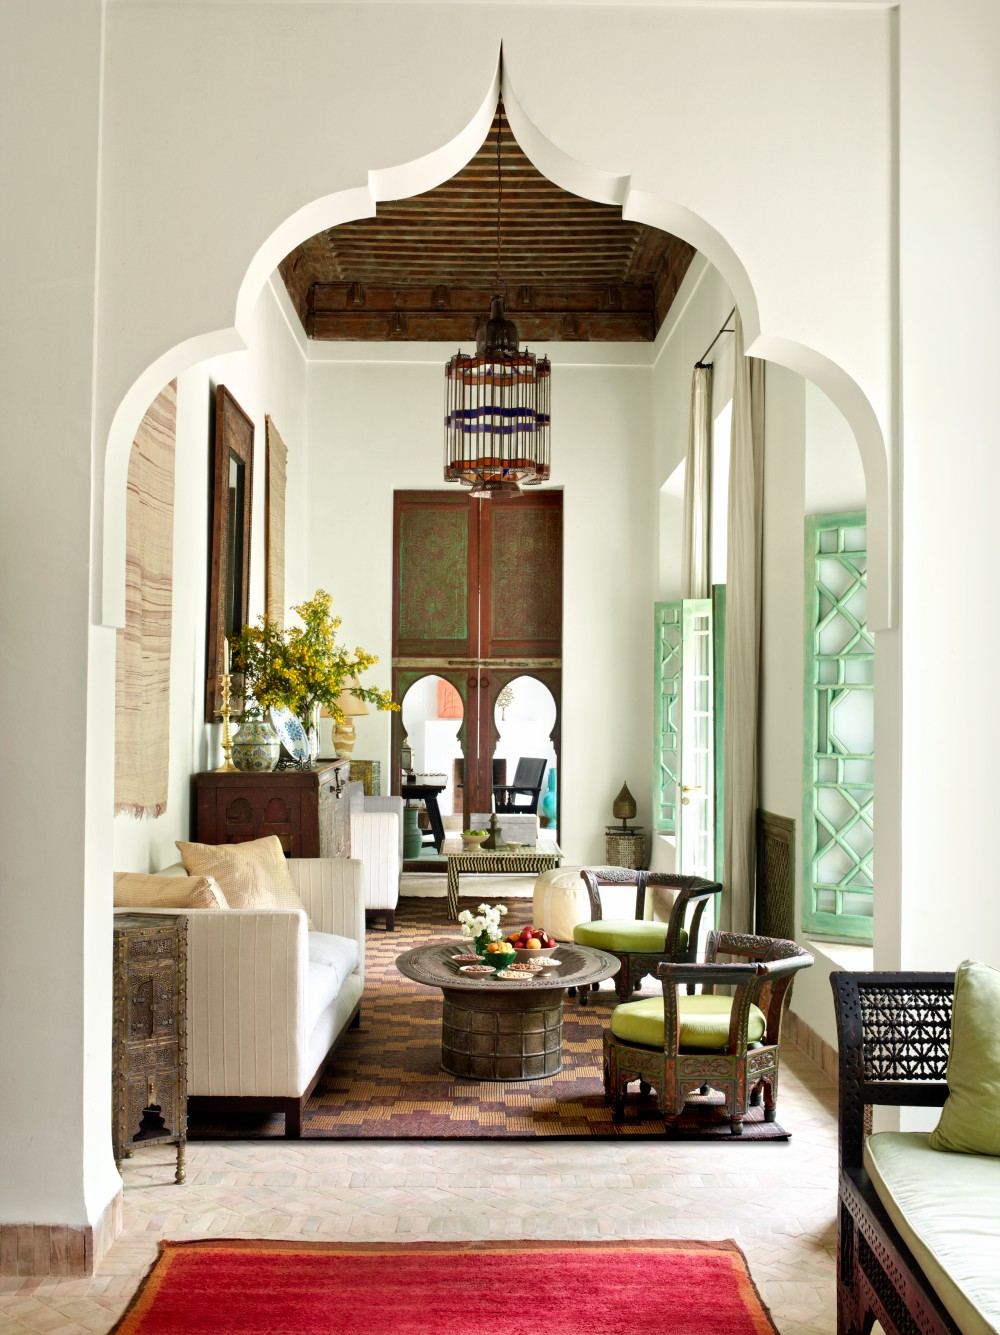 Moroccan Decoration Living Room: Exotic Living Room By Ahmad Sardar-Afkhami By